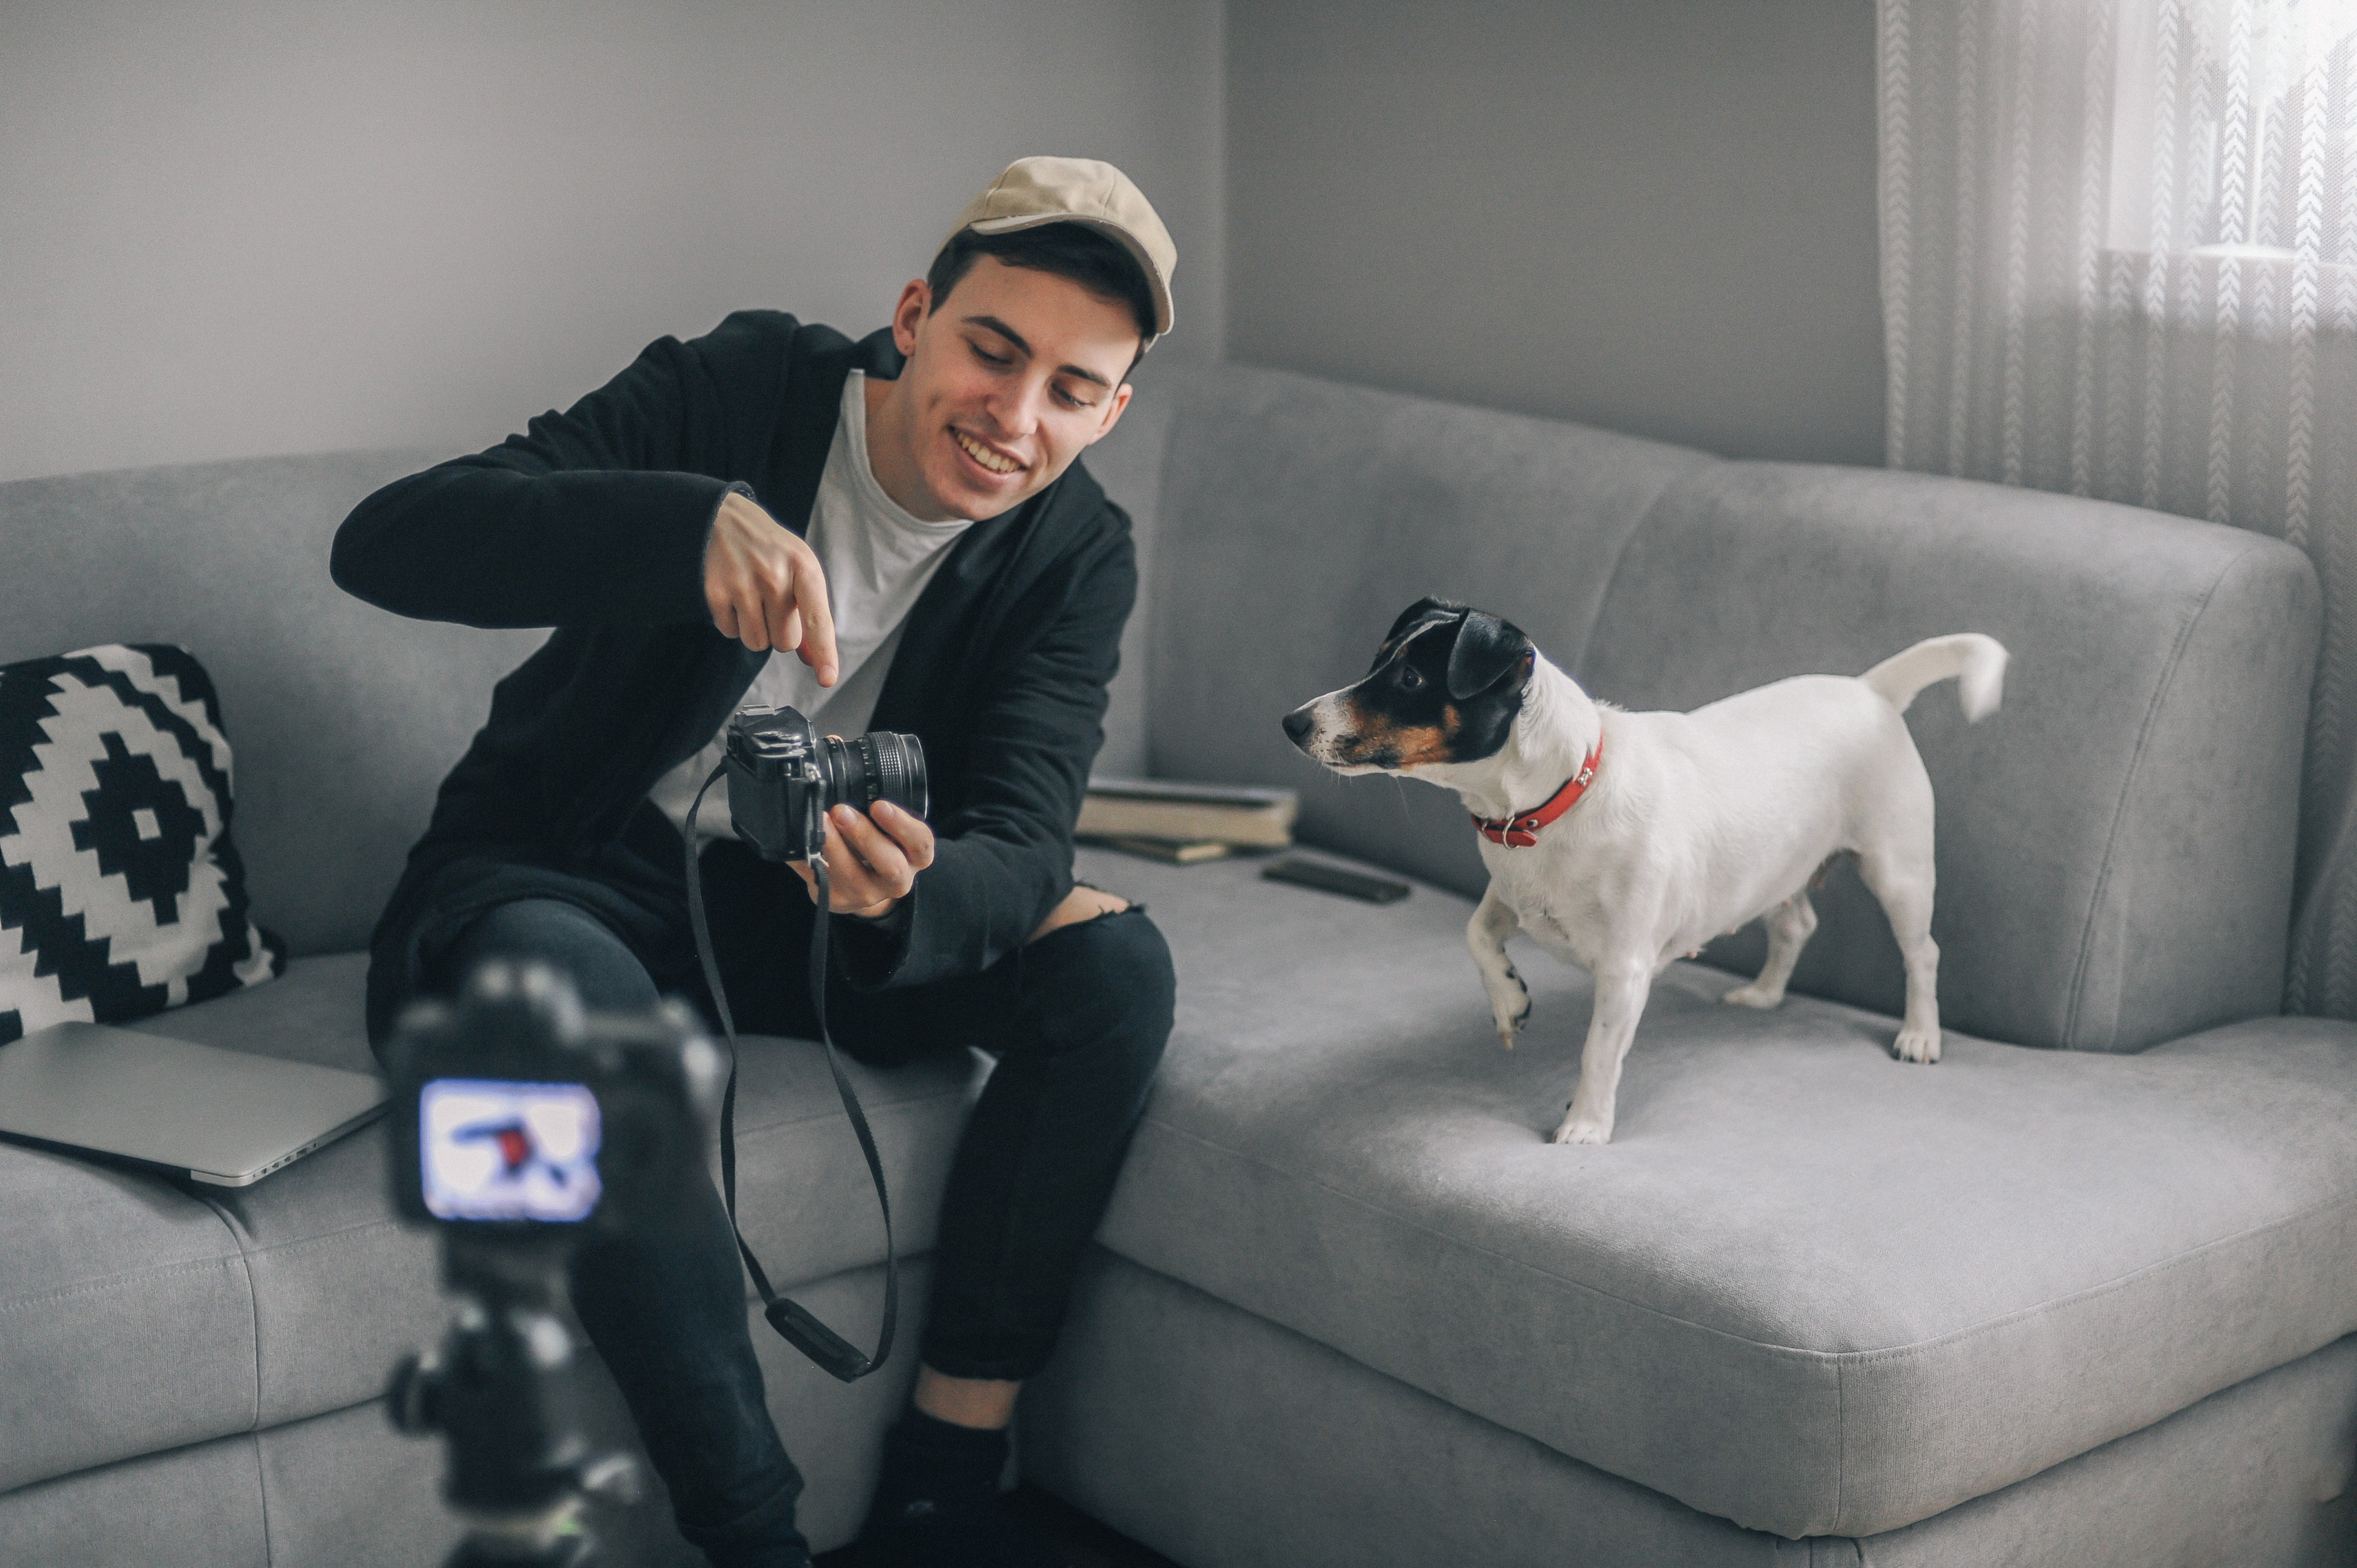 A young man sets up his camera and tripod on his couch. His dog is on the couch looking at him hold his camera.